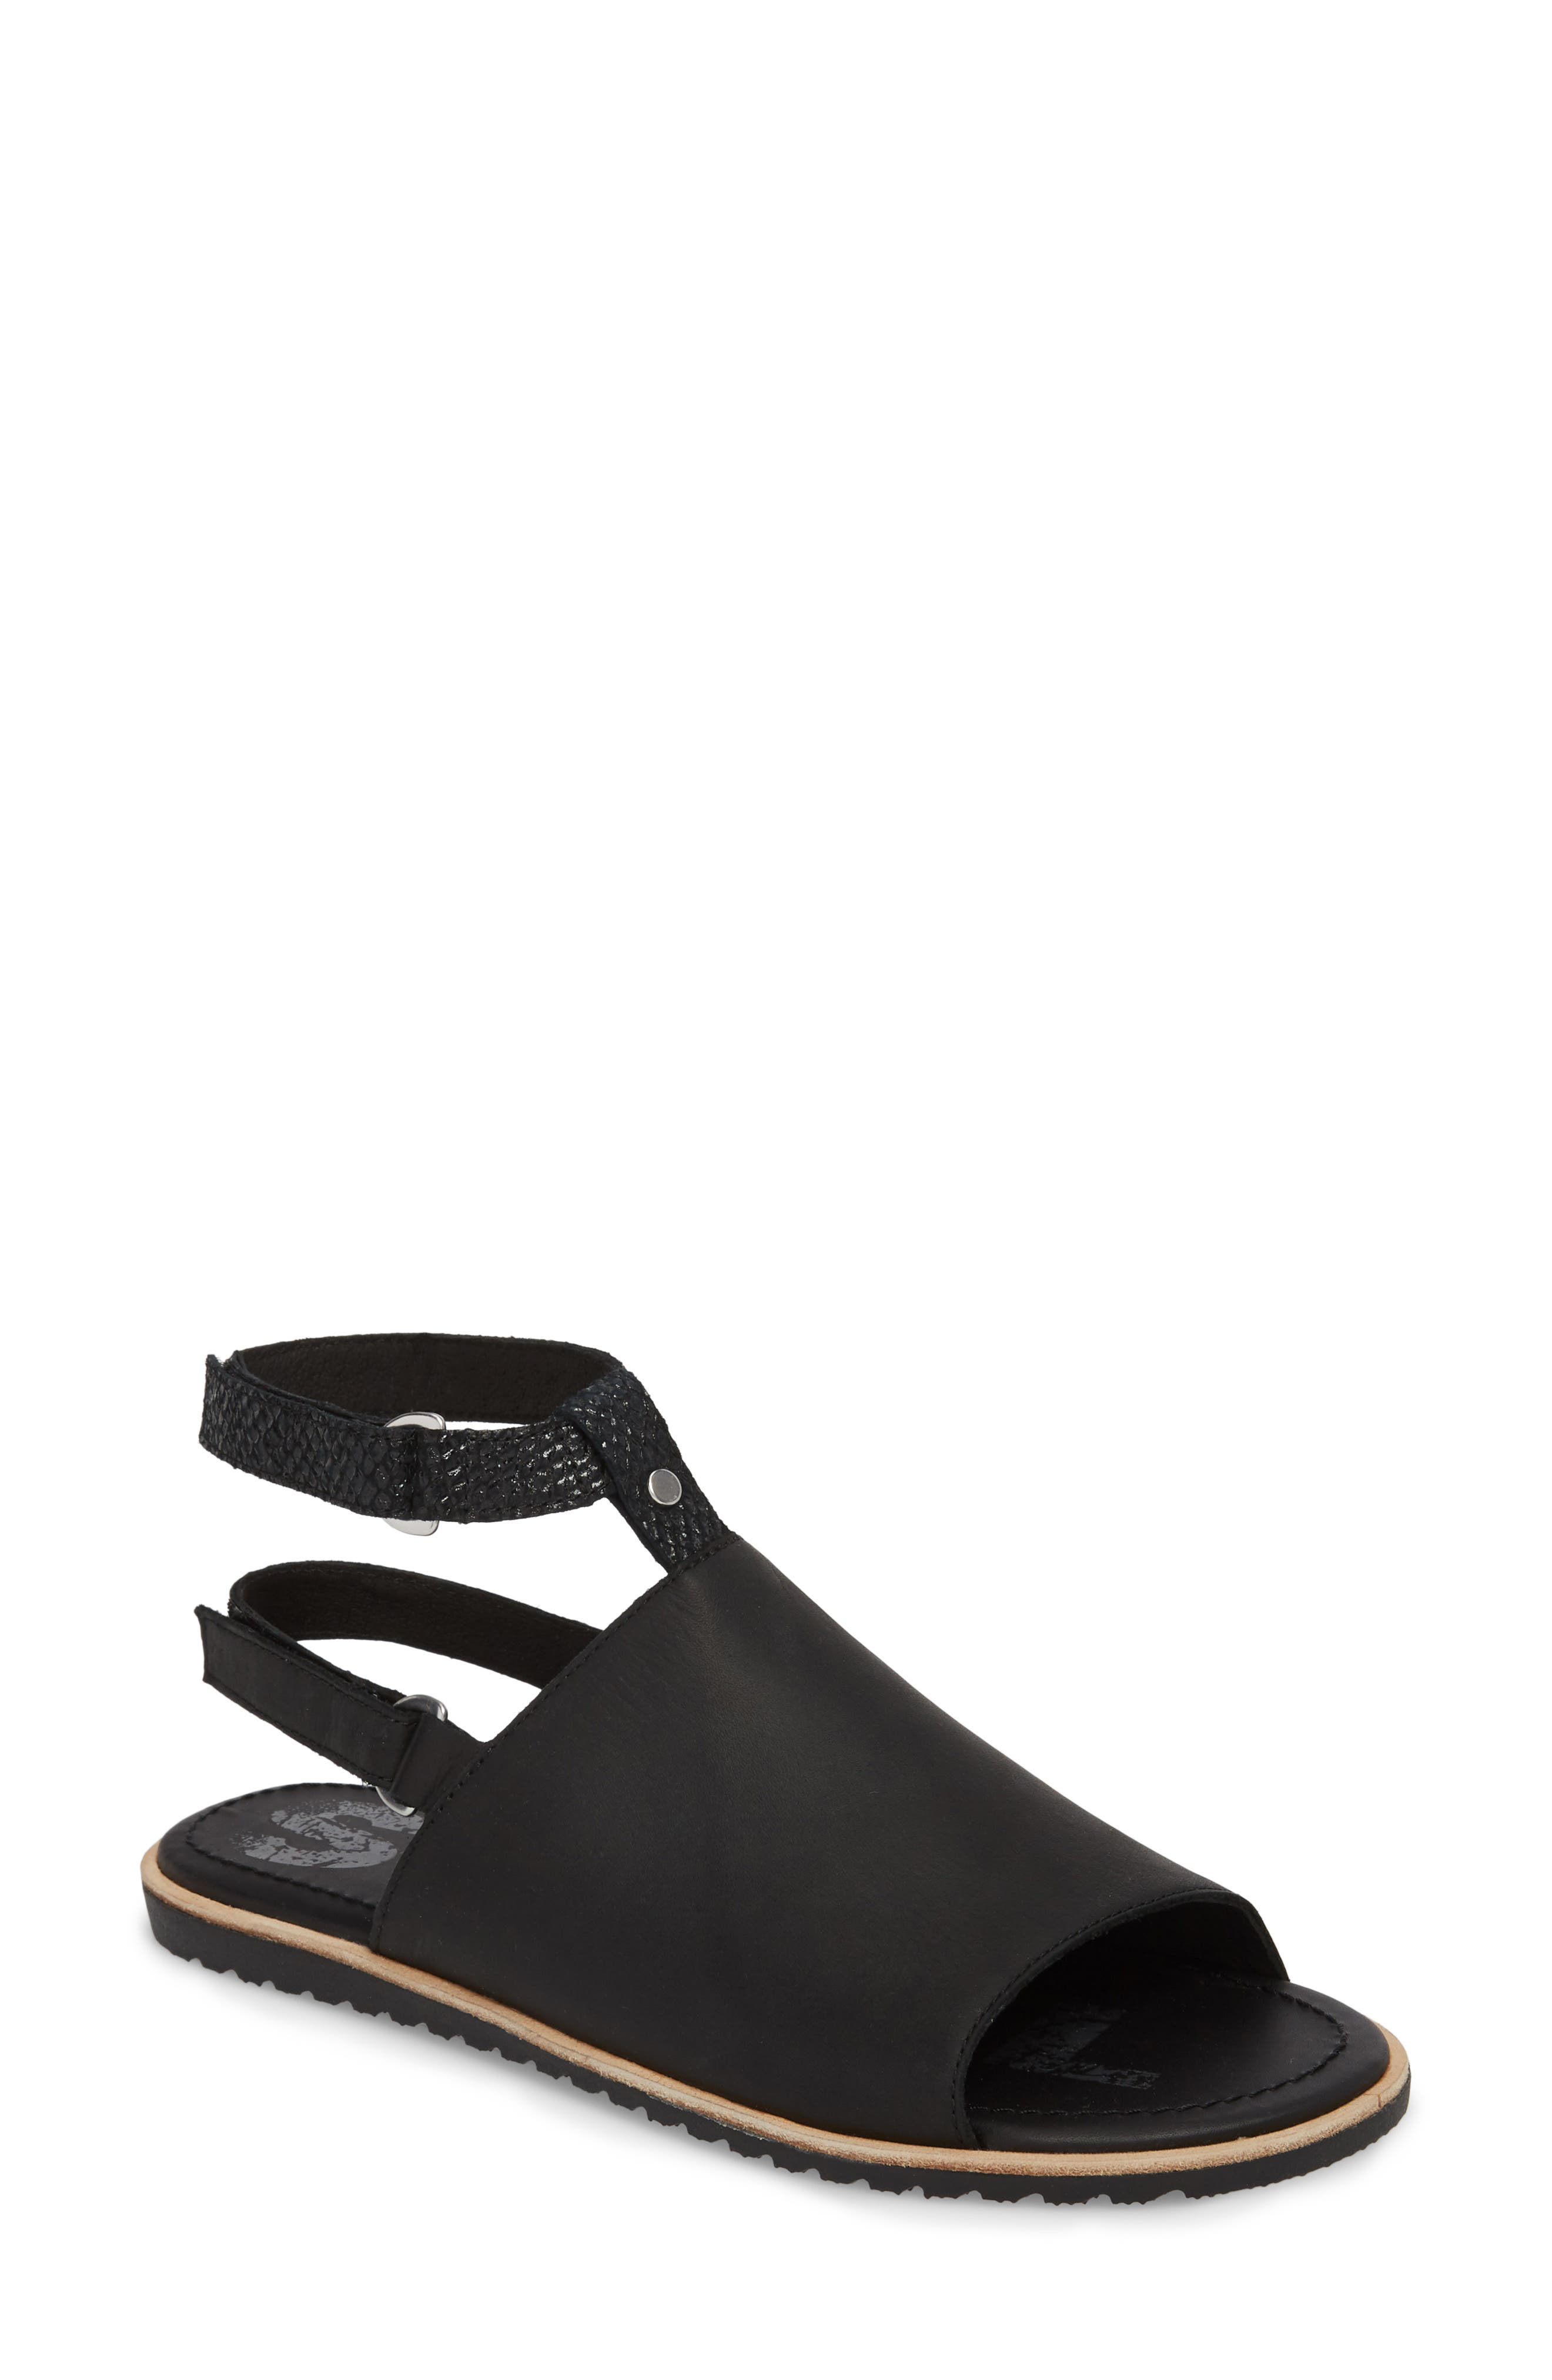 Ella Strappy Sandal,                         Main,                         color, Black